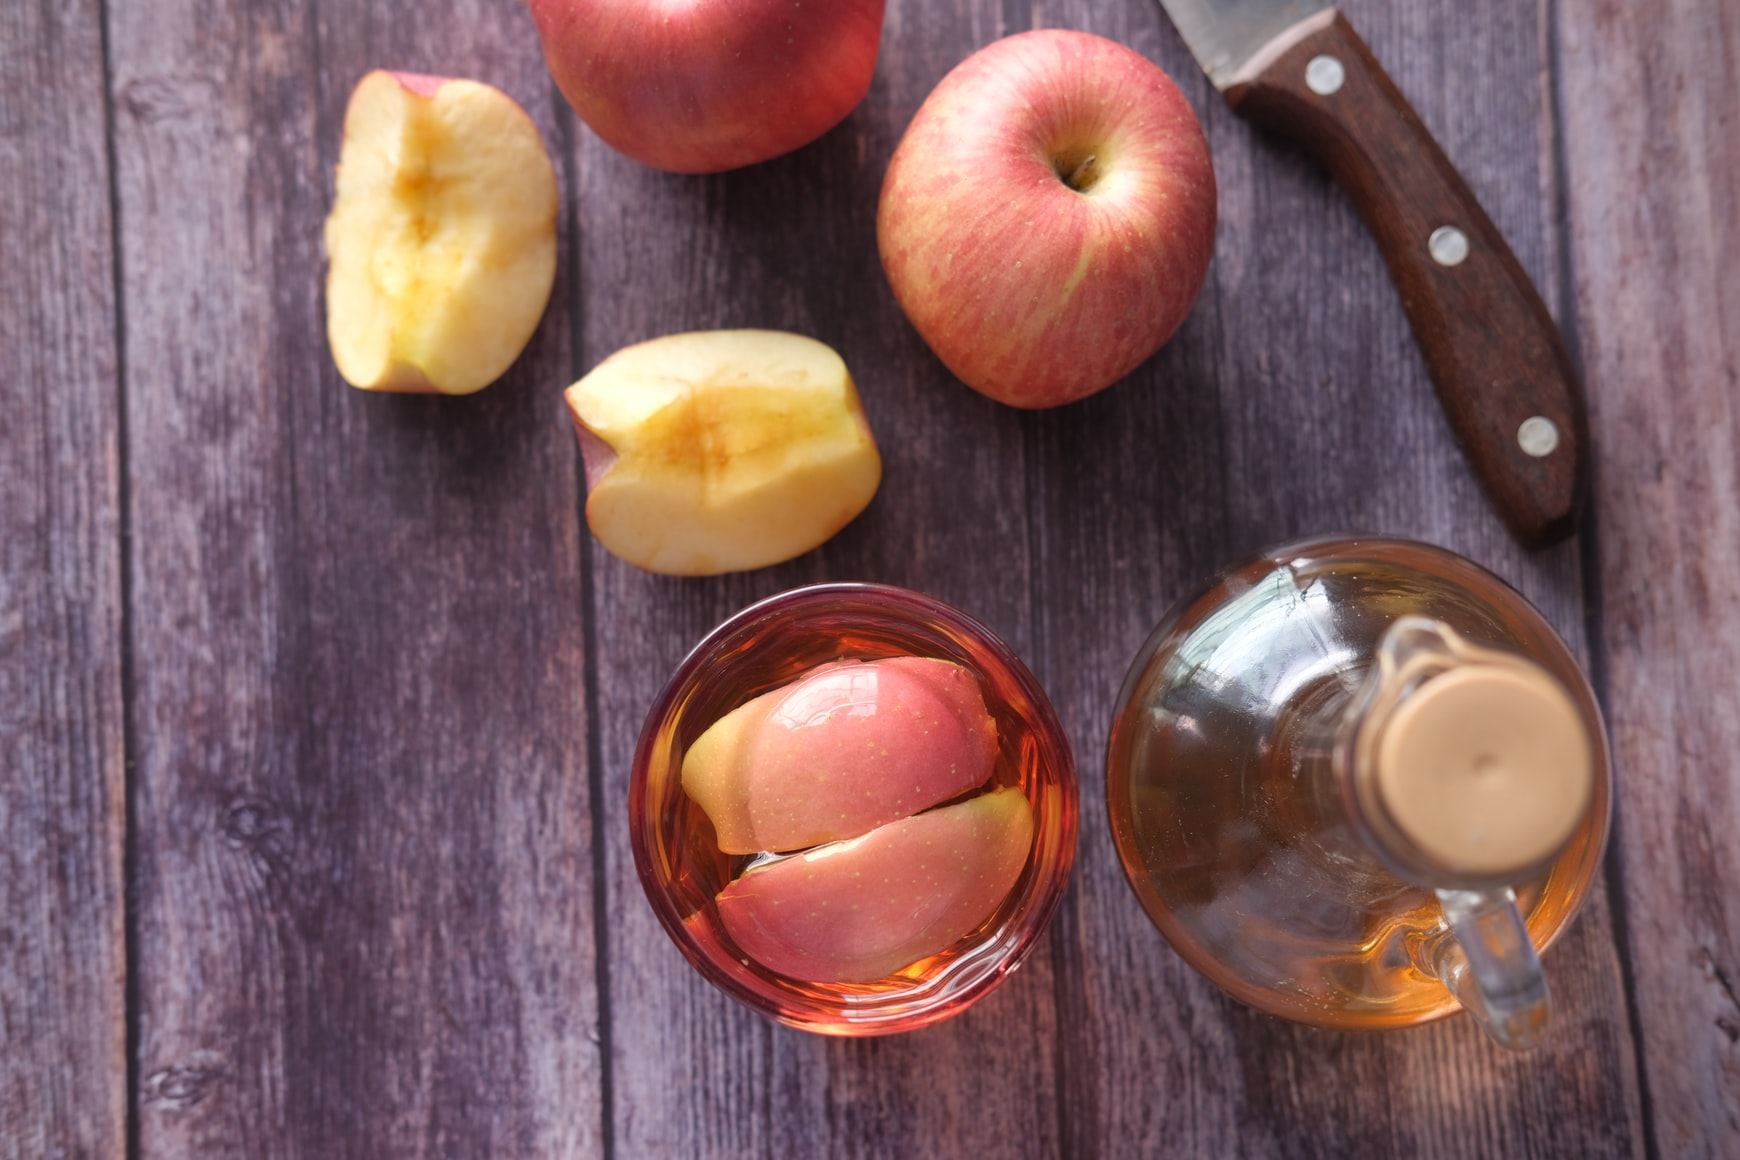 Spiked Apple Cider Recipes To Try This Fall